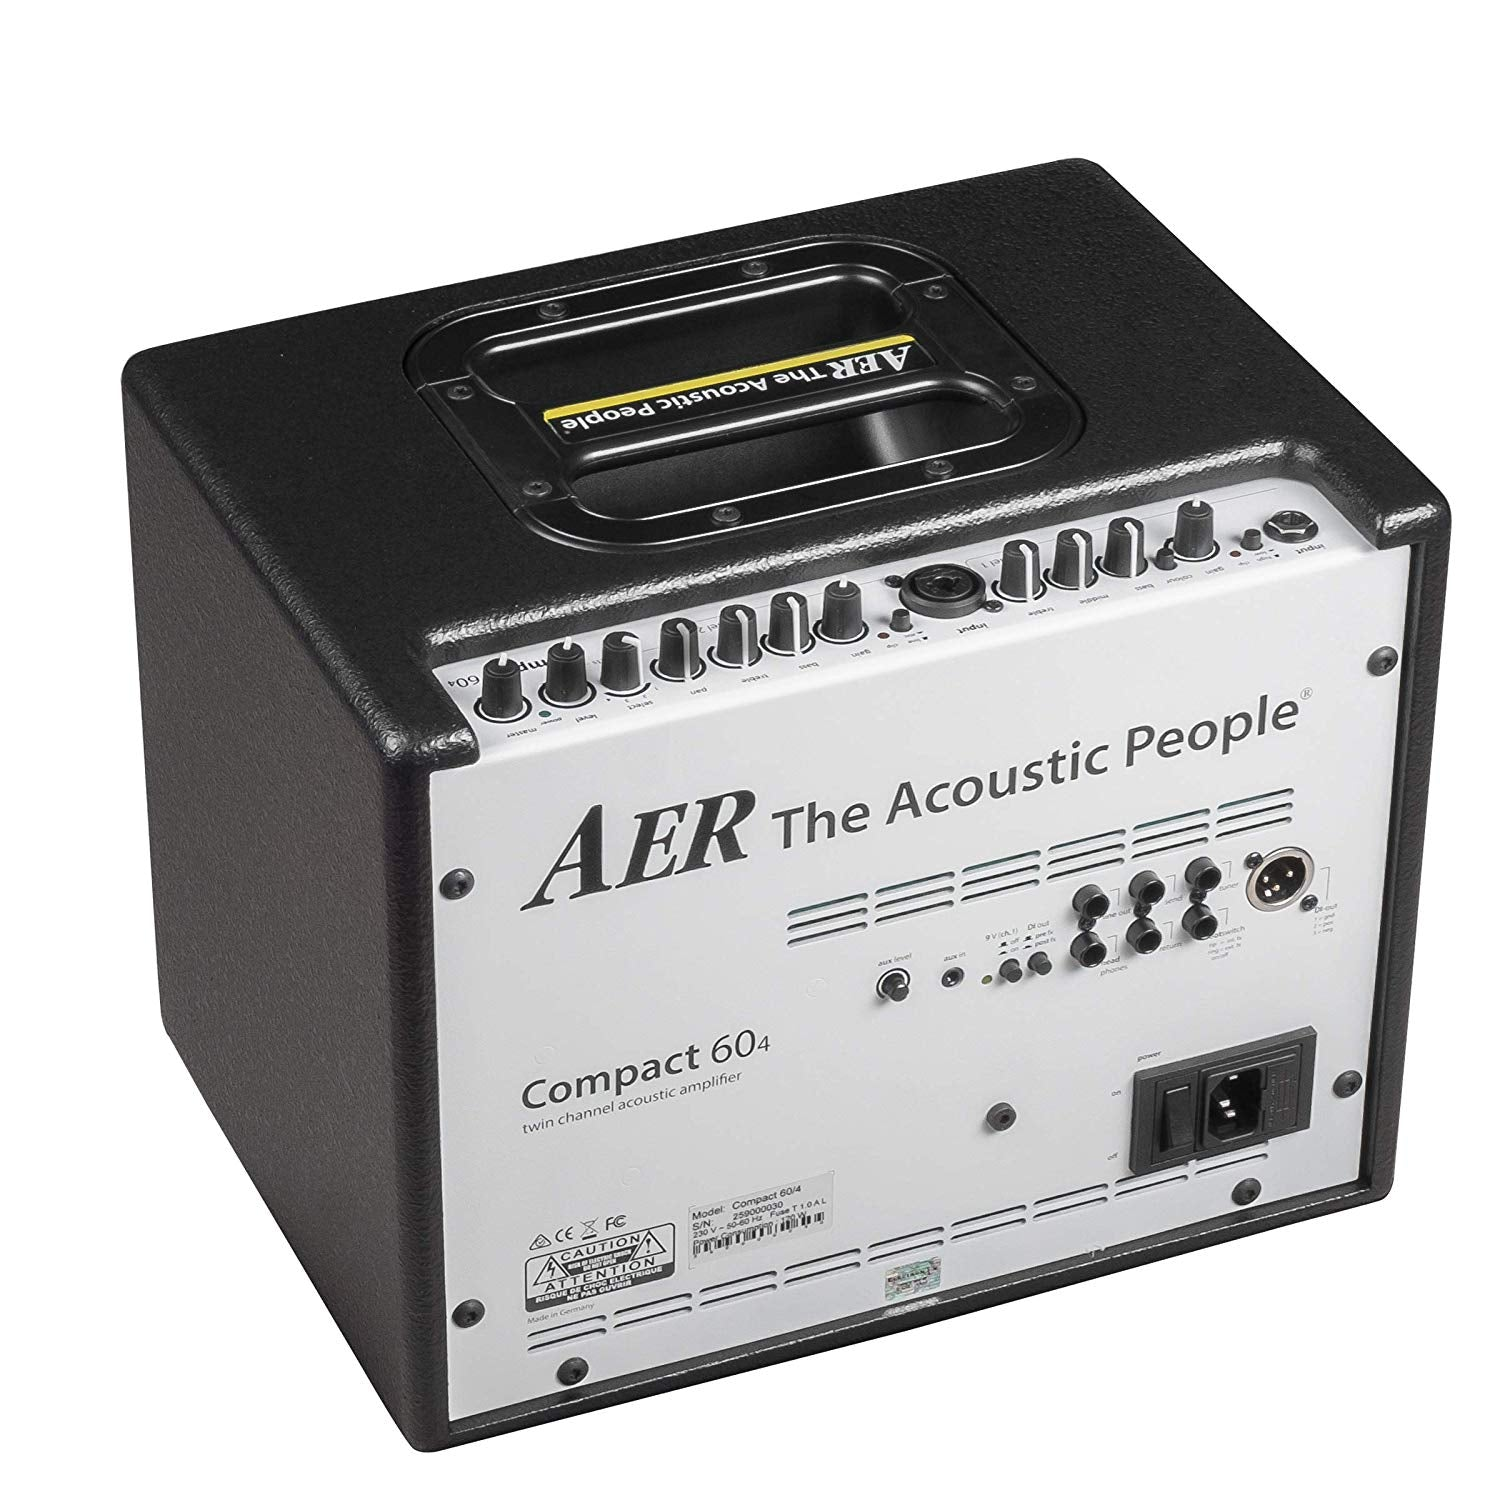 AER Compact 60/4 Acoustic Guitar Amplifier